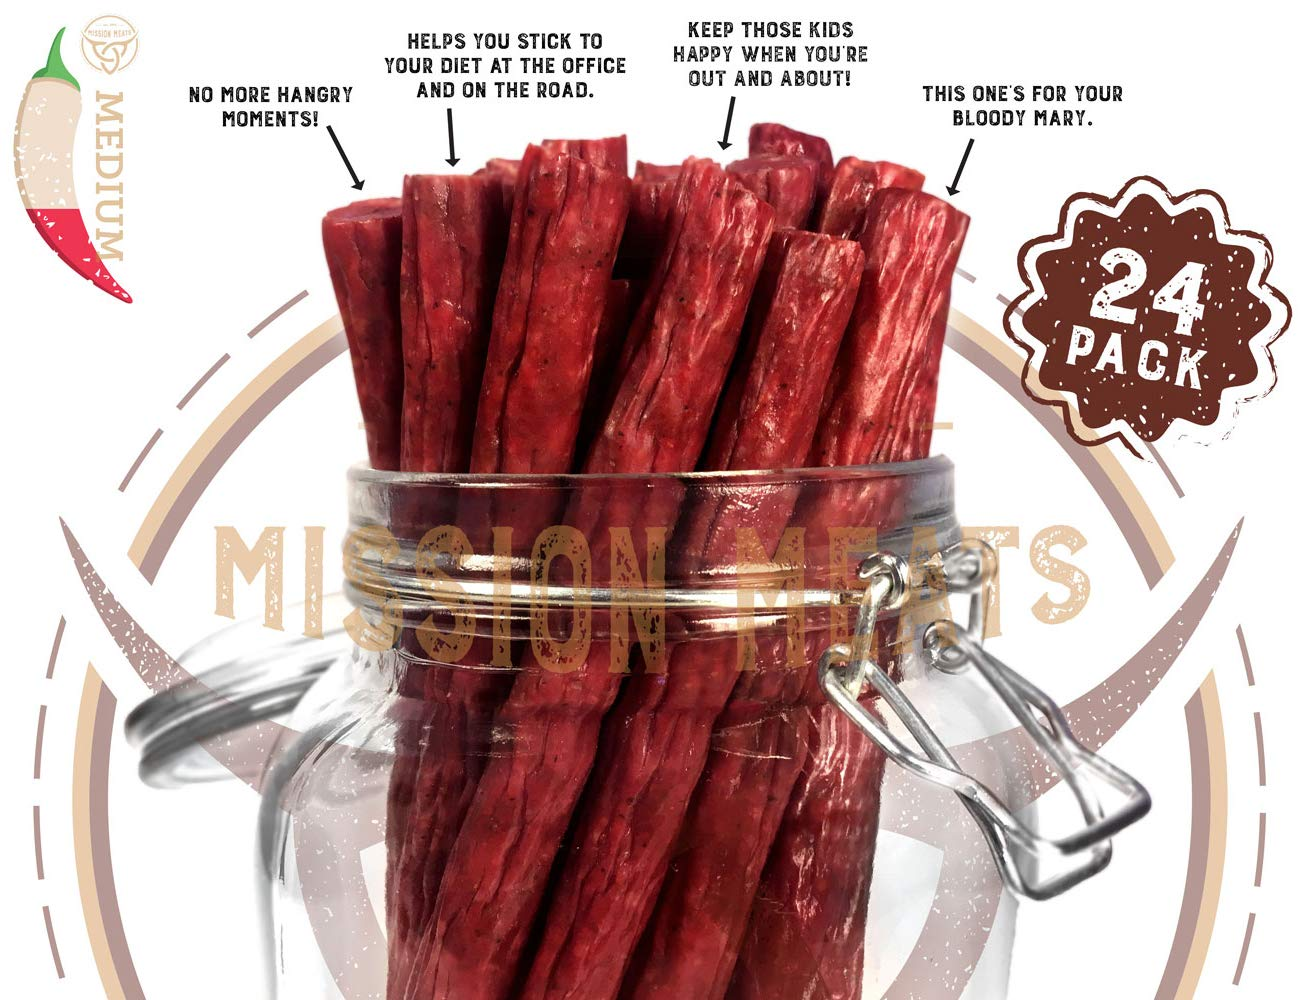 Mission Meats Keto Sugar Free Grass-Fed Beef Snacks Sticks Non-GMO Gluten Free MSG Free Nitrate Nitrite Free Paleo Healthy Natural Meat Sticks Beef Jerky (Jalapeno Beef, 24)